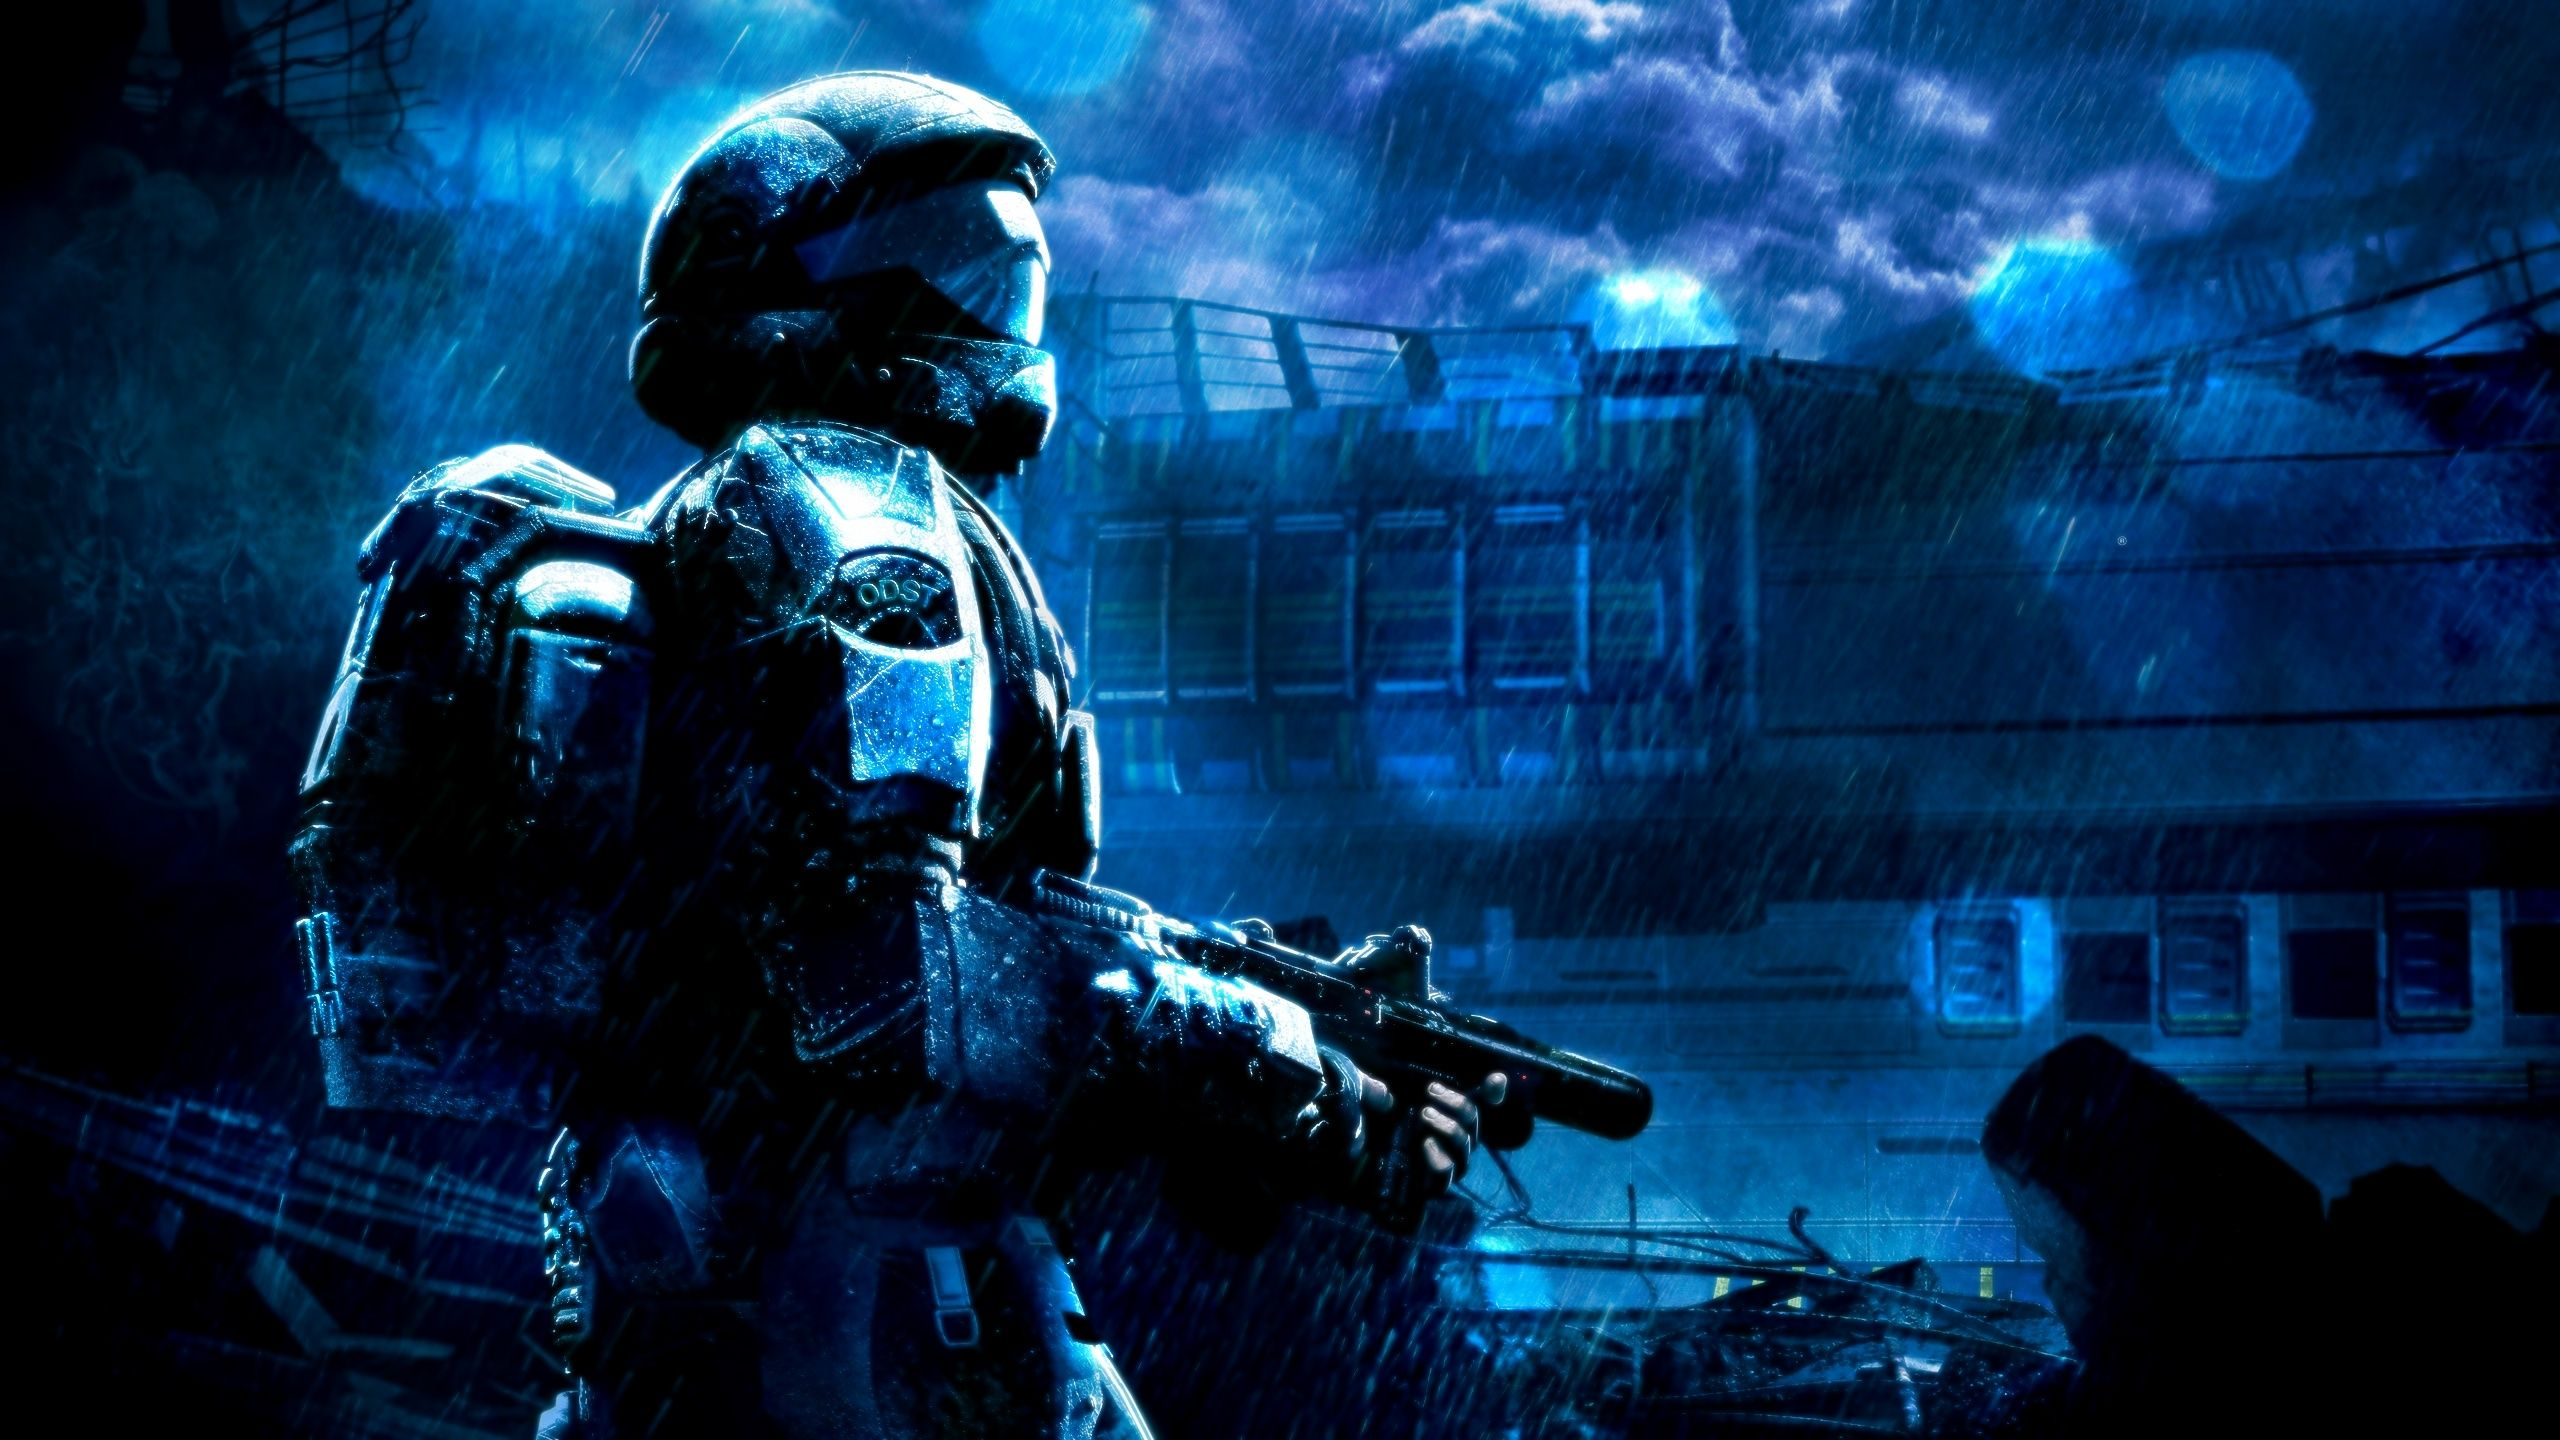 10 Latest Halo 3 Odst Wallpapers Full Hd 1080p For Pc Background Cool Backgrounds Halo 3 Odst New Halo